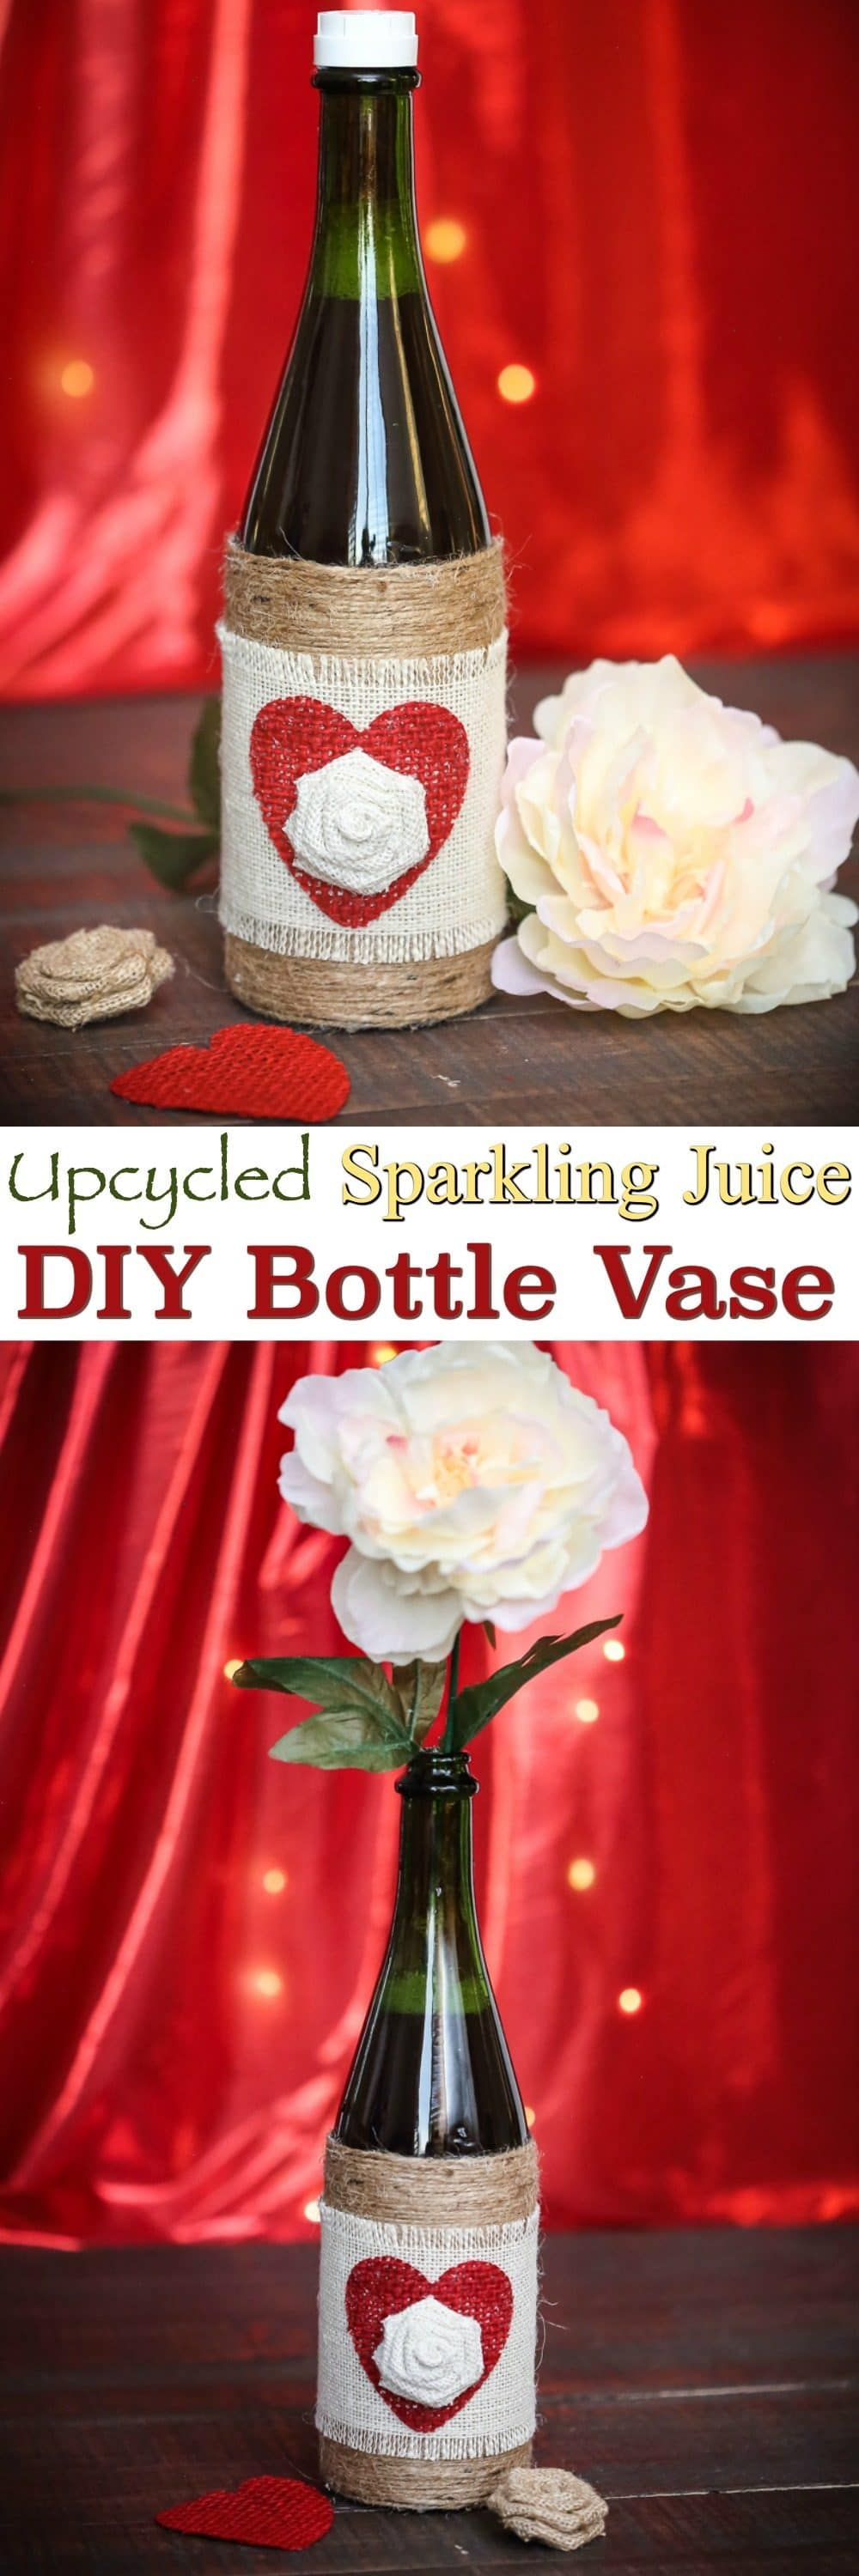 how to make sparkling juice at home